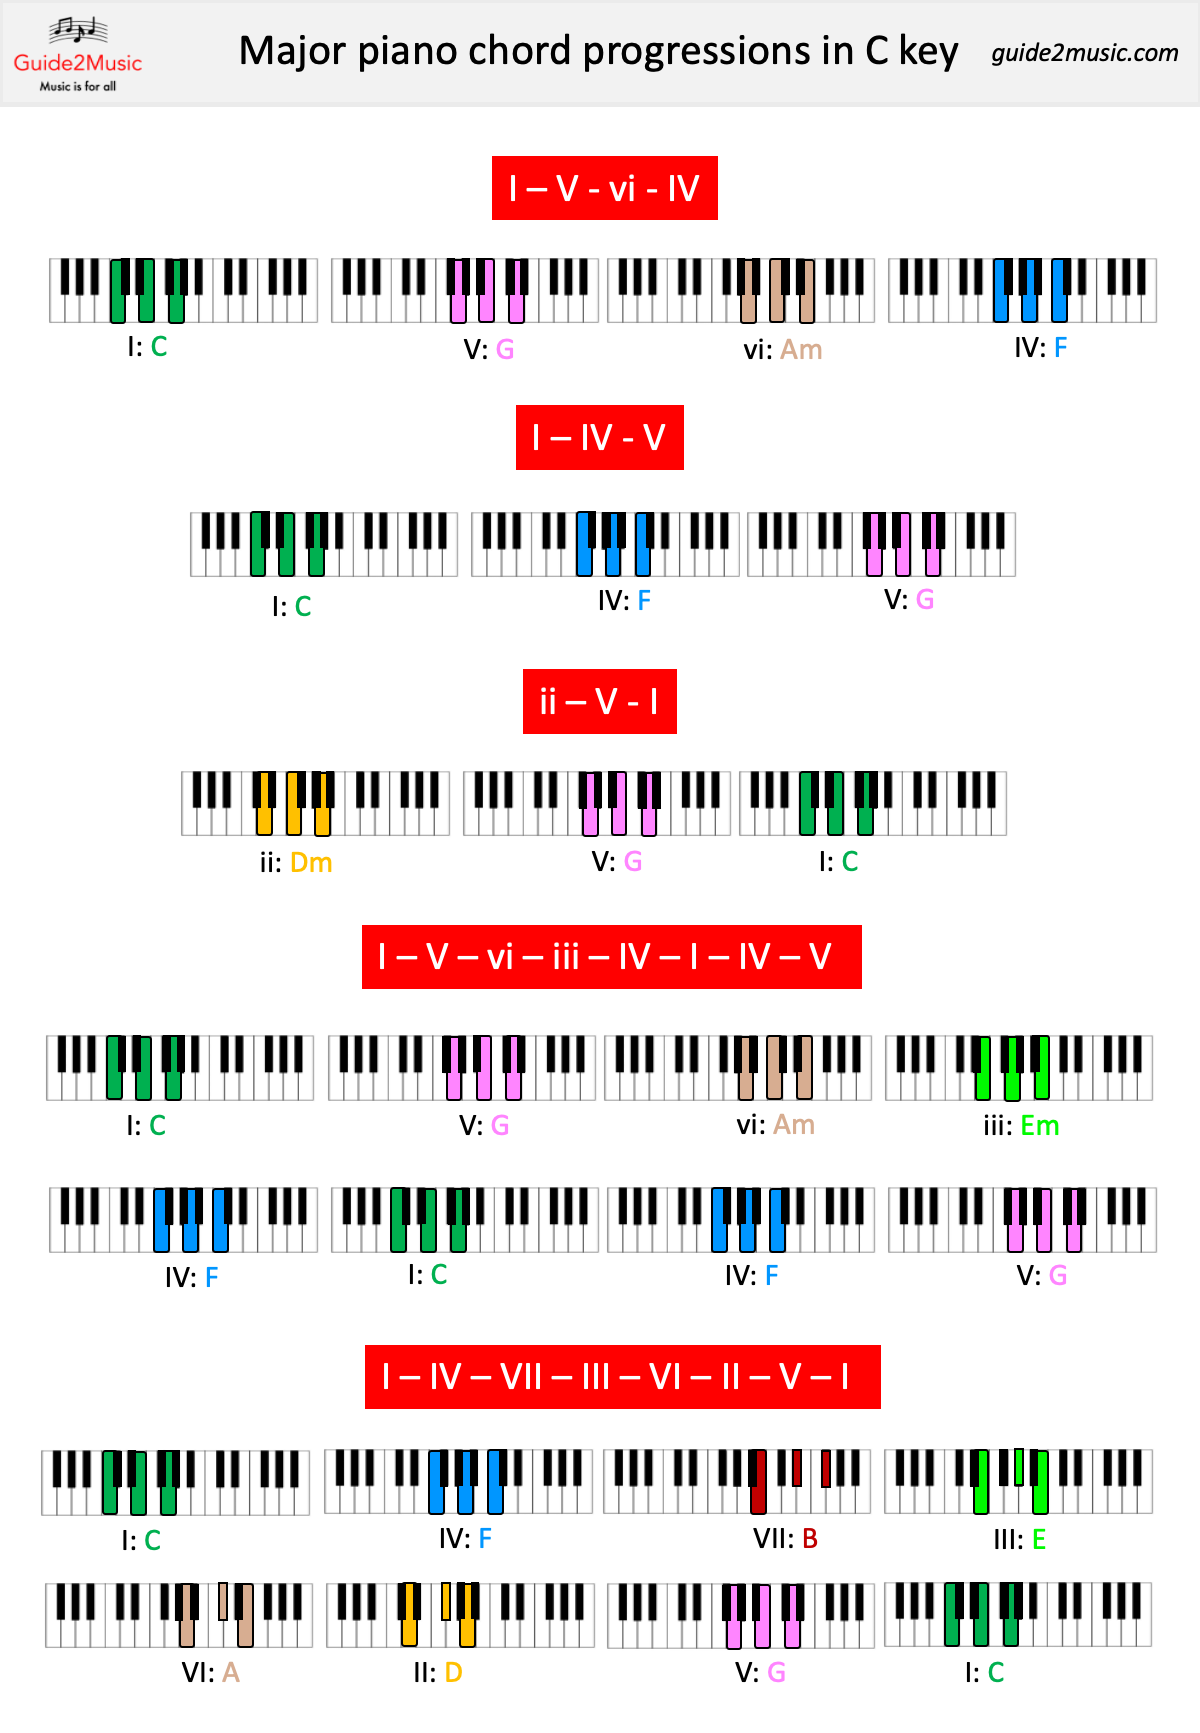 Major piano chord progressions chart